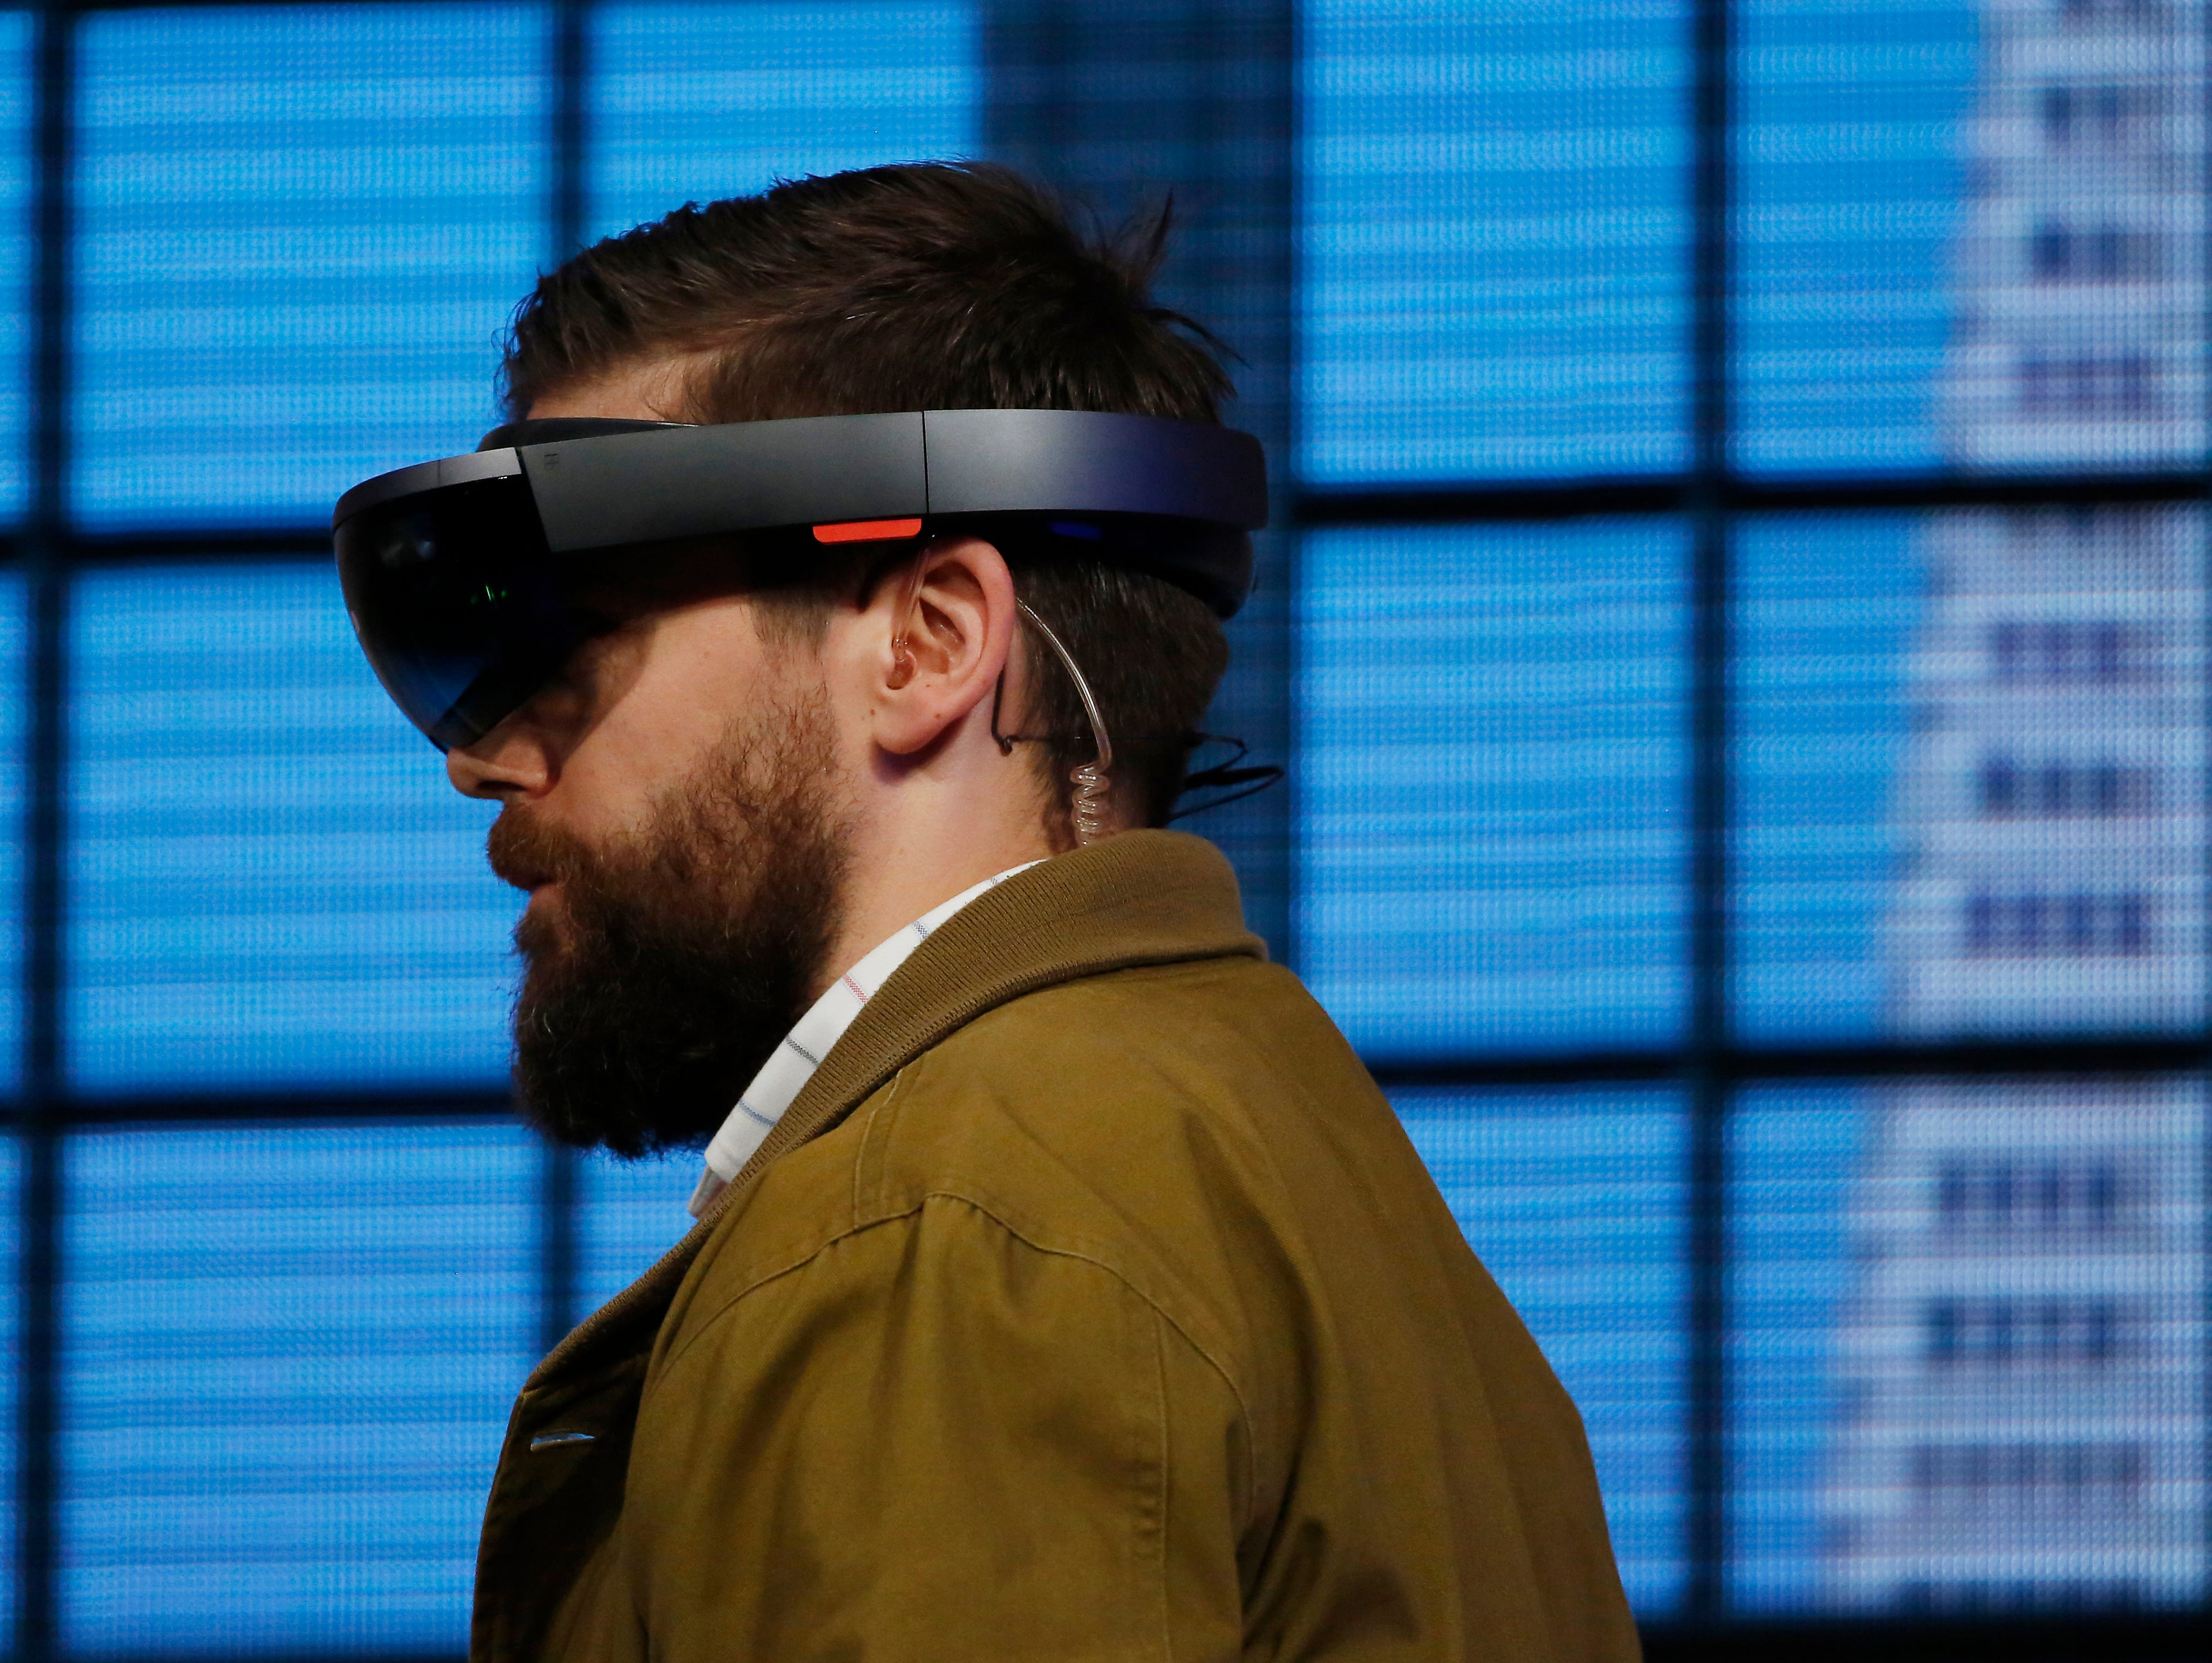 The Microsoft HoloLens augmented reality headset is demonstrated on stage during the 2015 Microsoft Build Conference.